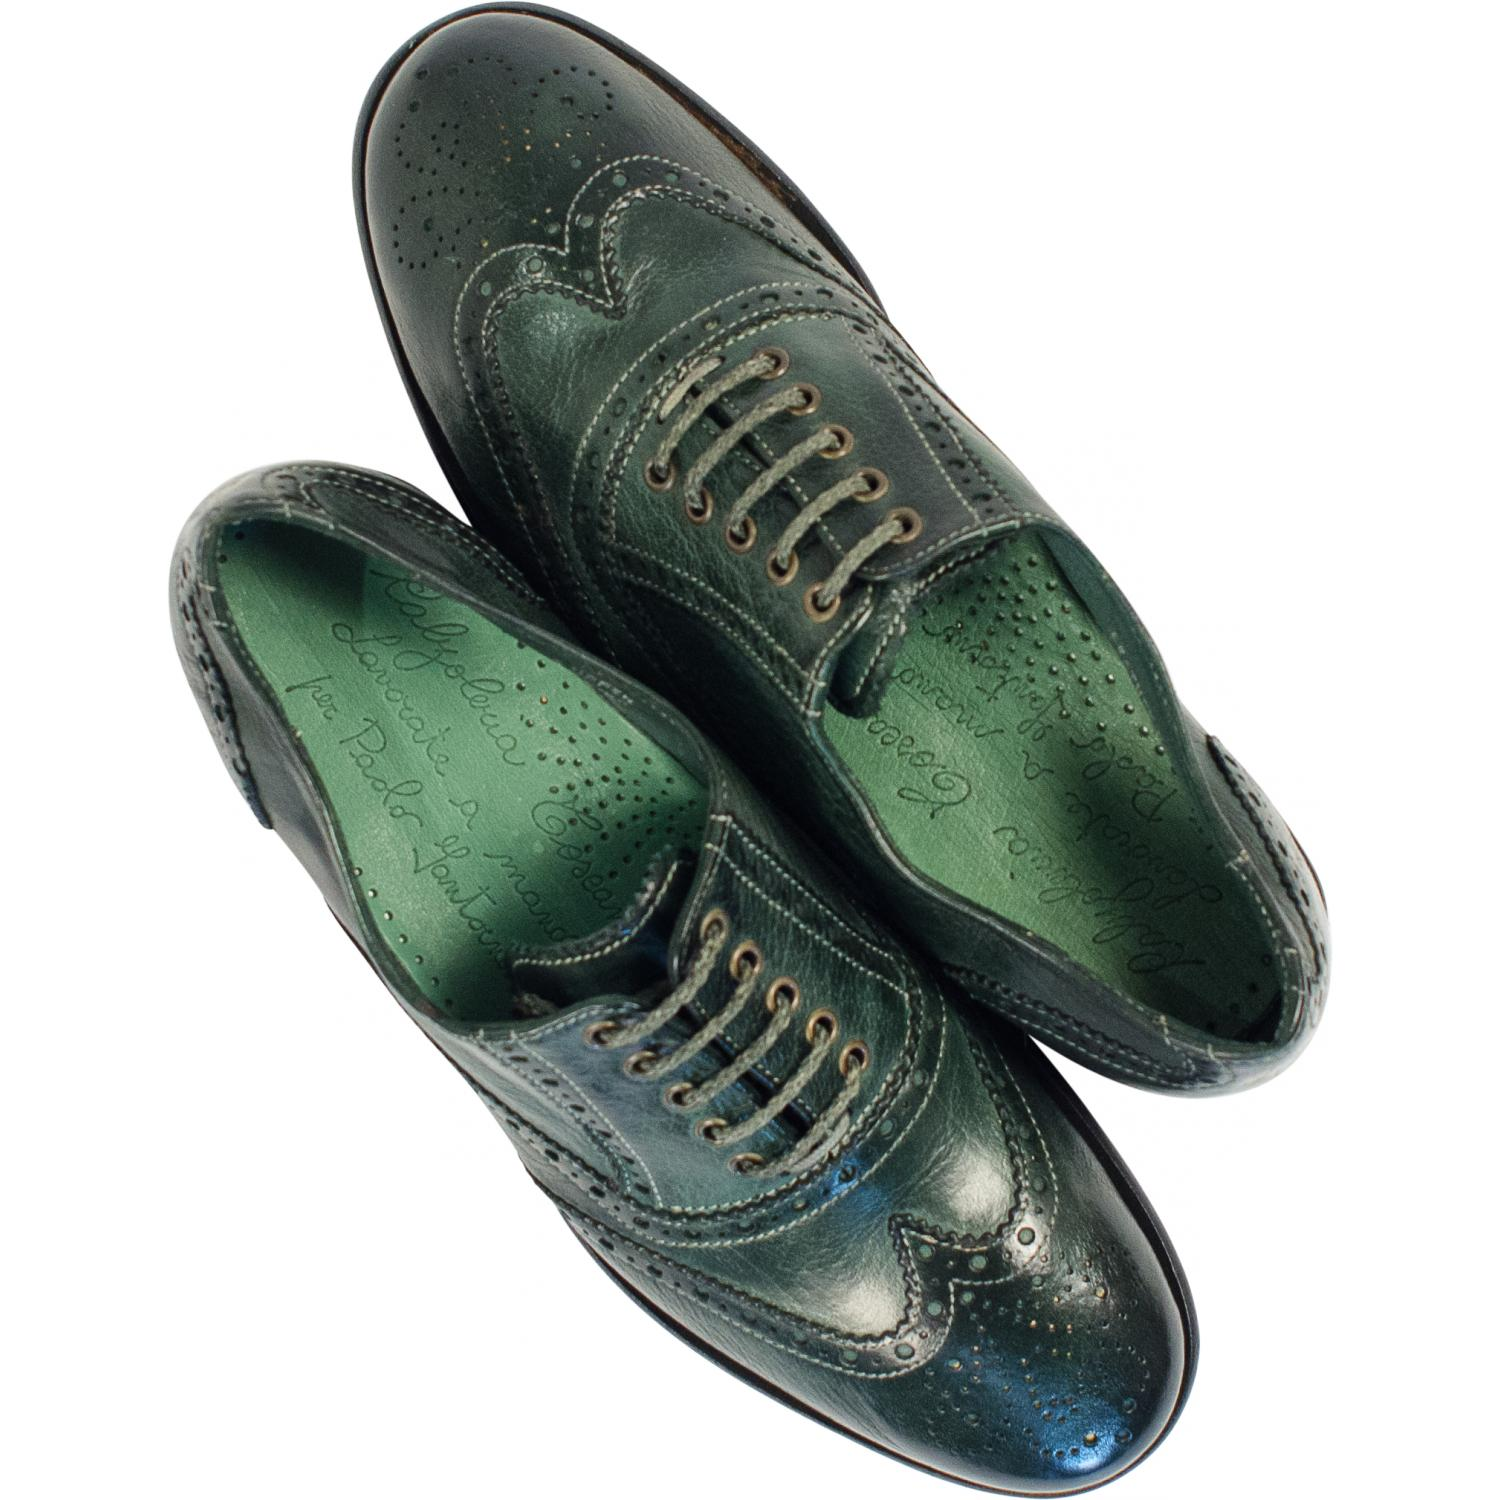 Ashley Dip Dyed Green Leather Oxford Lace Up Shoes Paolo